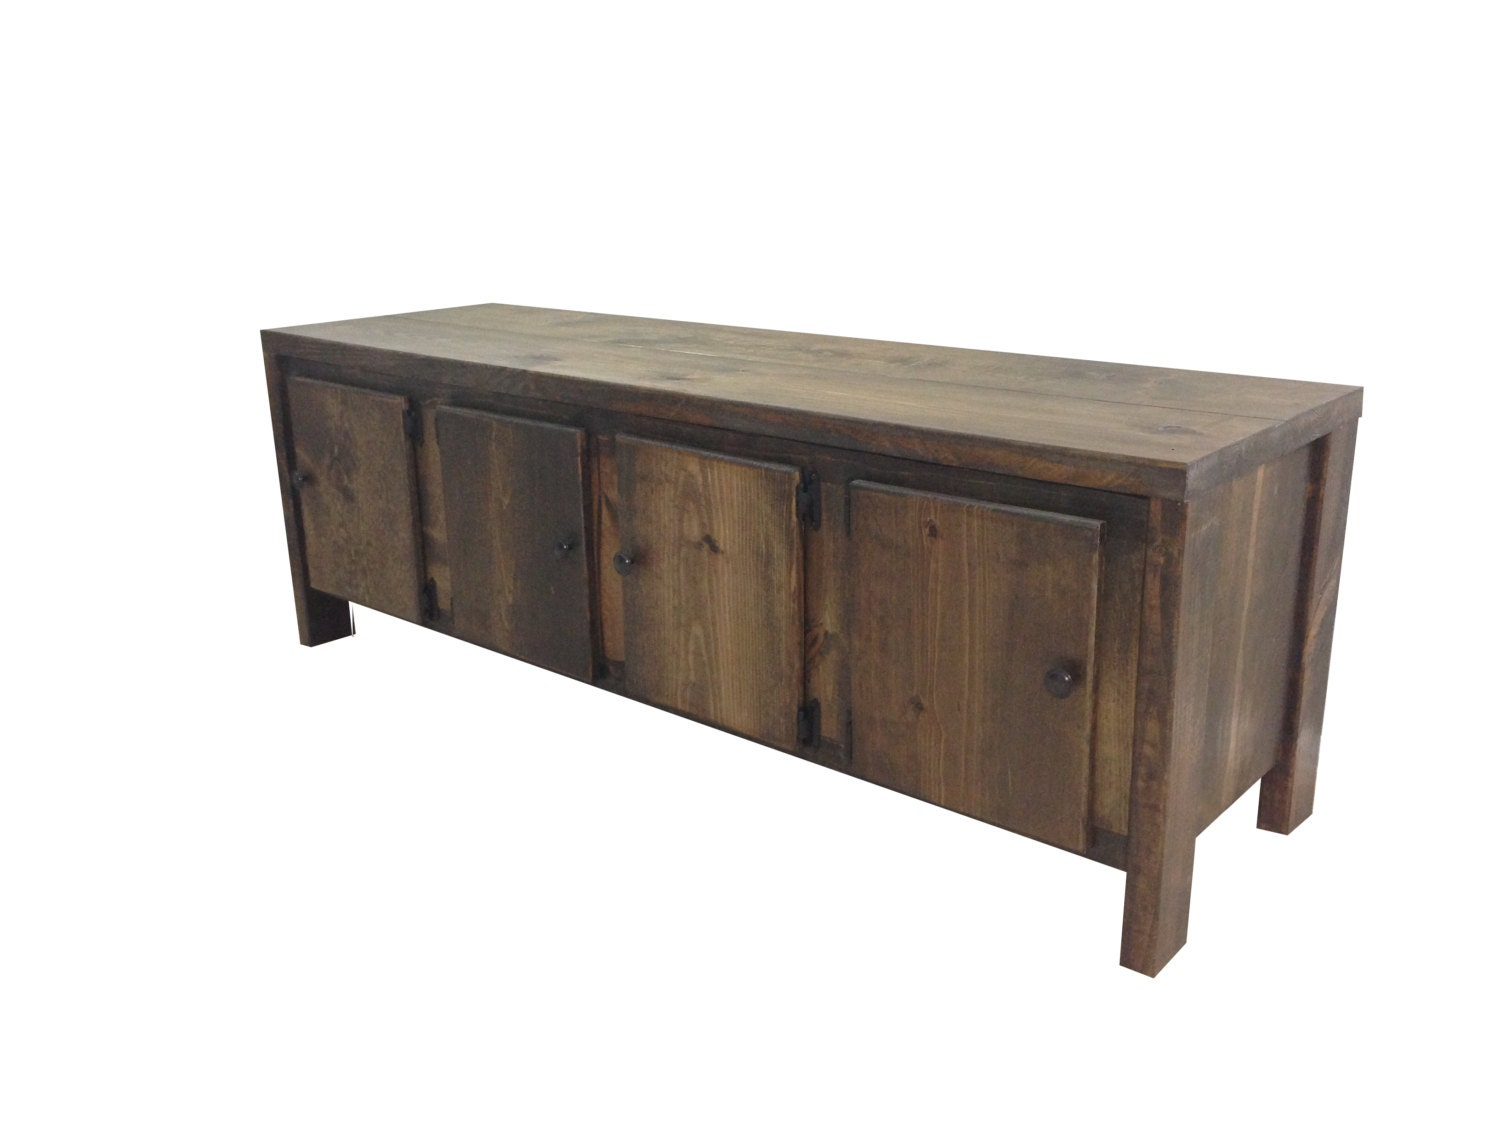 Rustic storage bench Storage benches